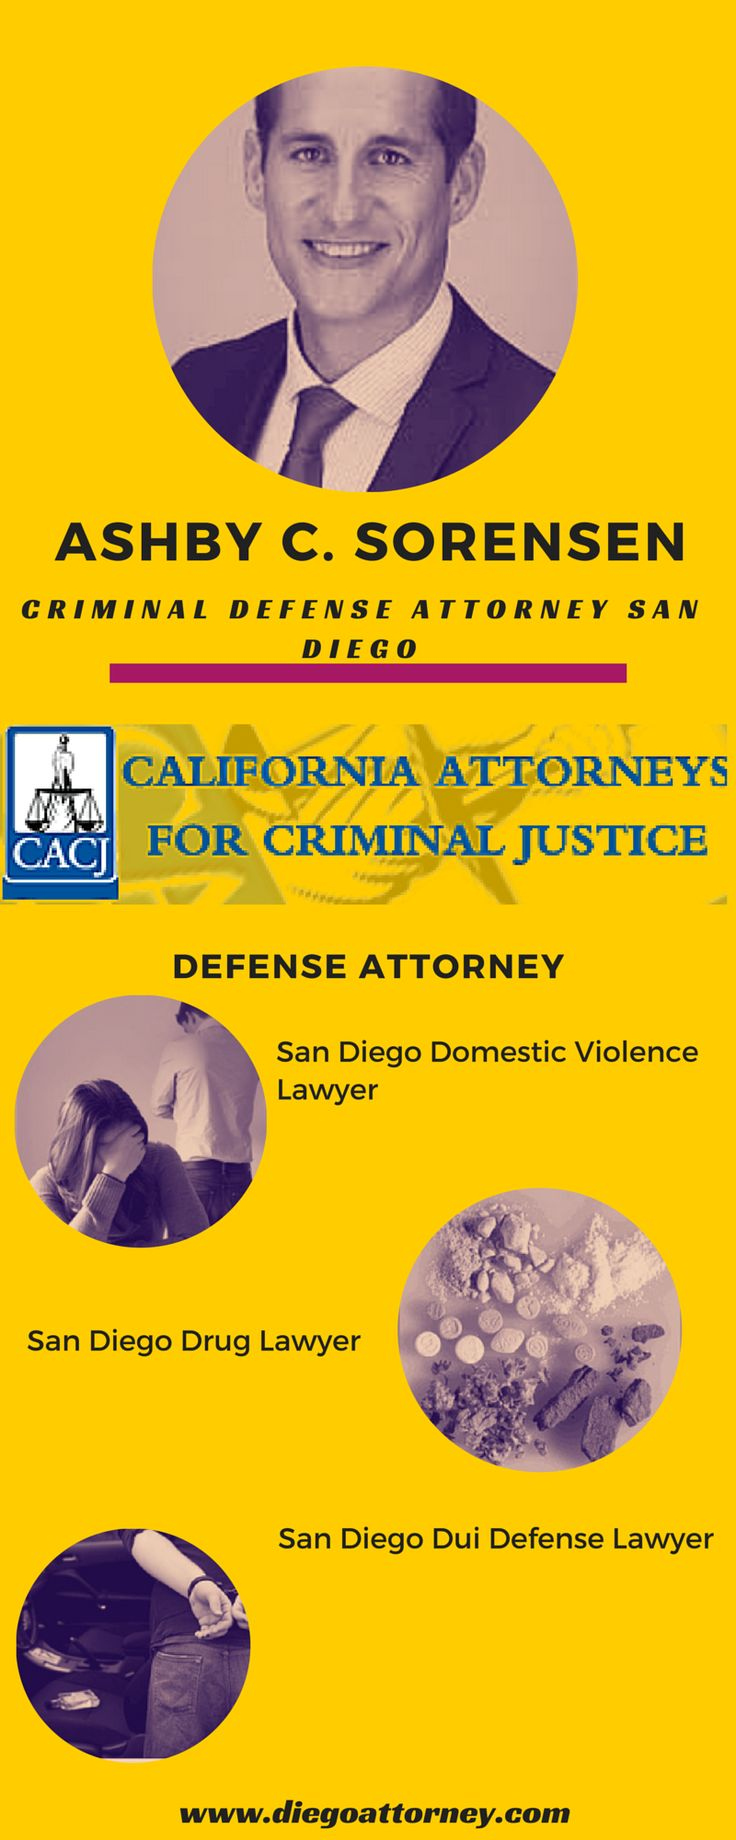 It is very important to select a right DUI lawyer in San Diego defend a DUI case. Our #SanDiegoDuiDefenseLawyer is known and respected throughout San Diego courts by judges and prosecutors. Call us to speak directly with an attorney who will handle your case top to bottom and will keep you informed of the progress and development. Upon request, we will provide results and show examples of victories in defending DUI cases in San Diego courts.